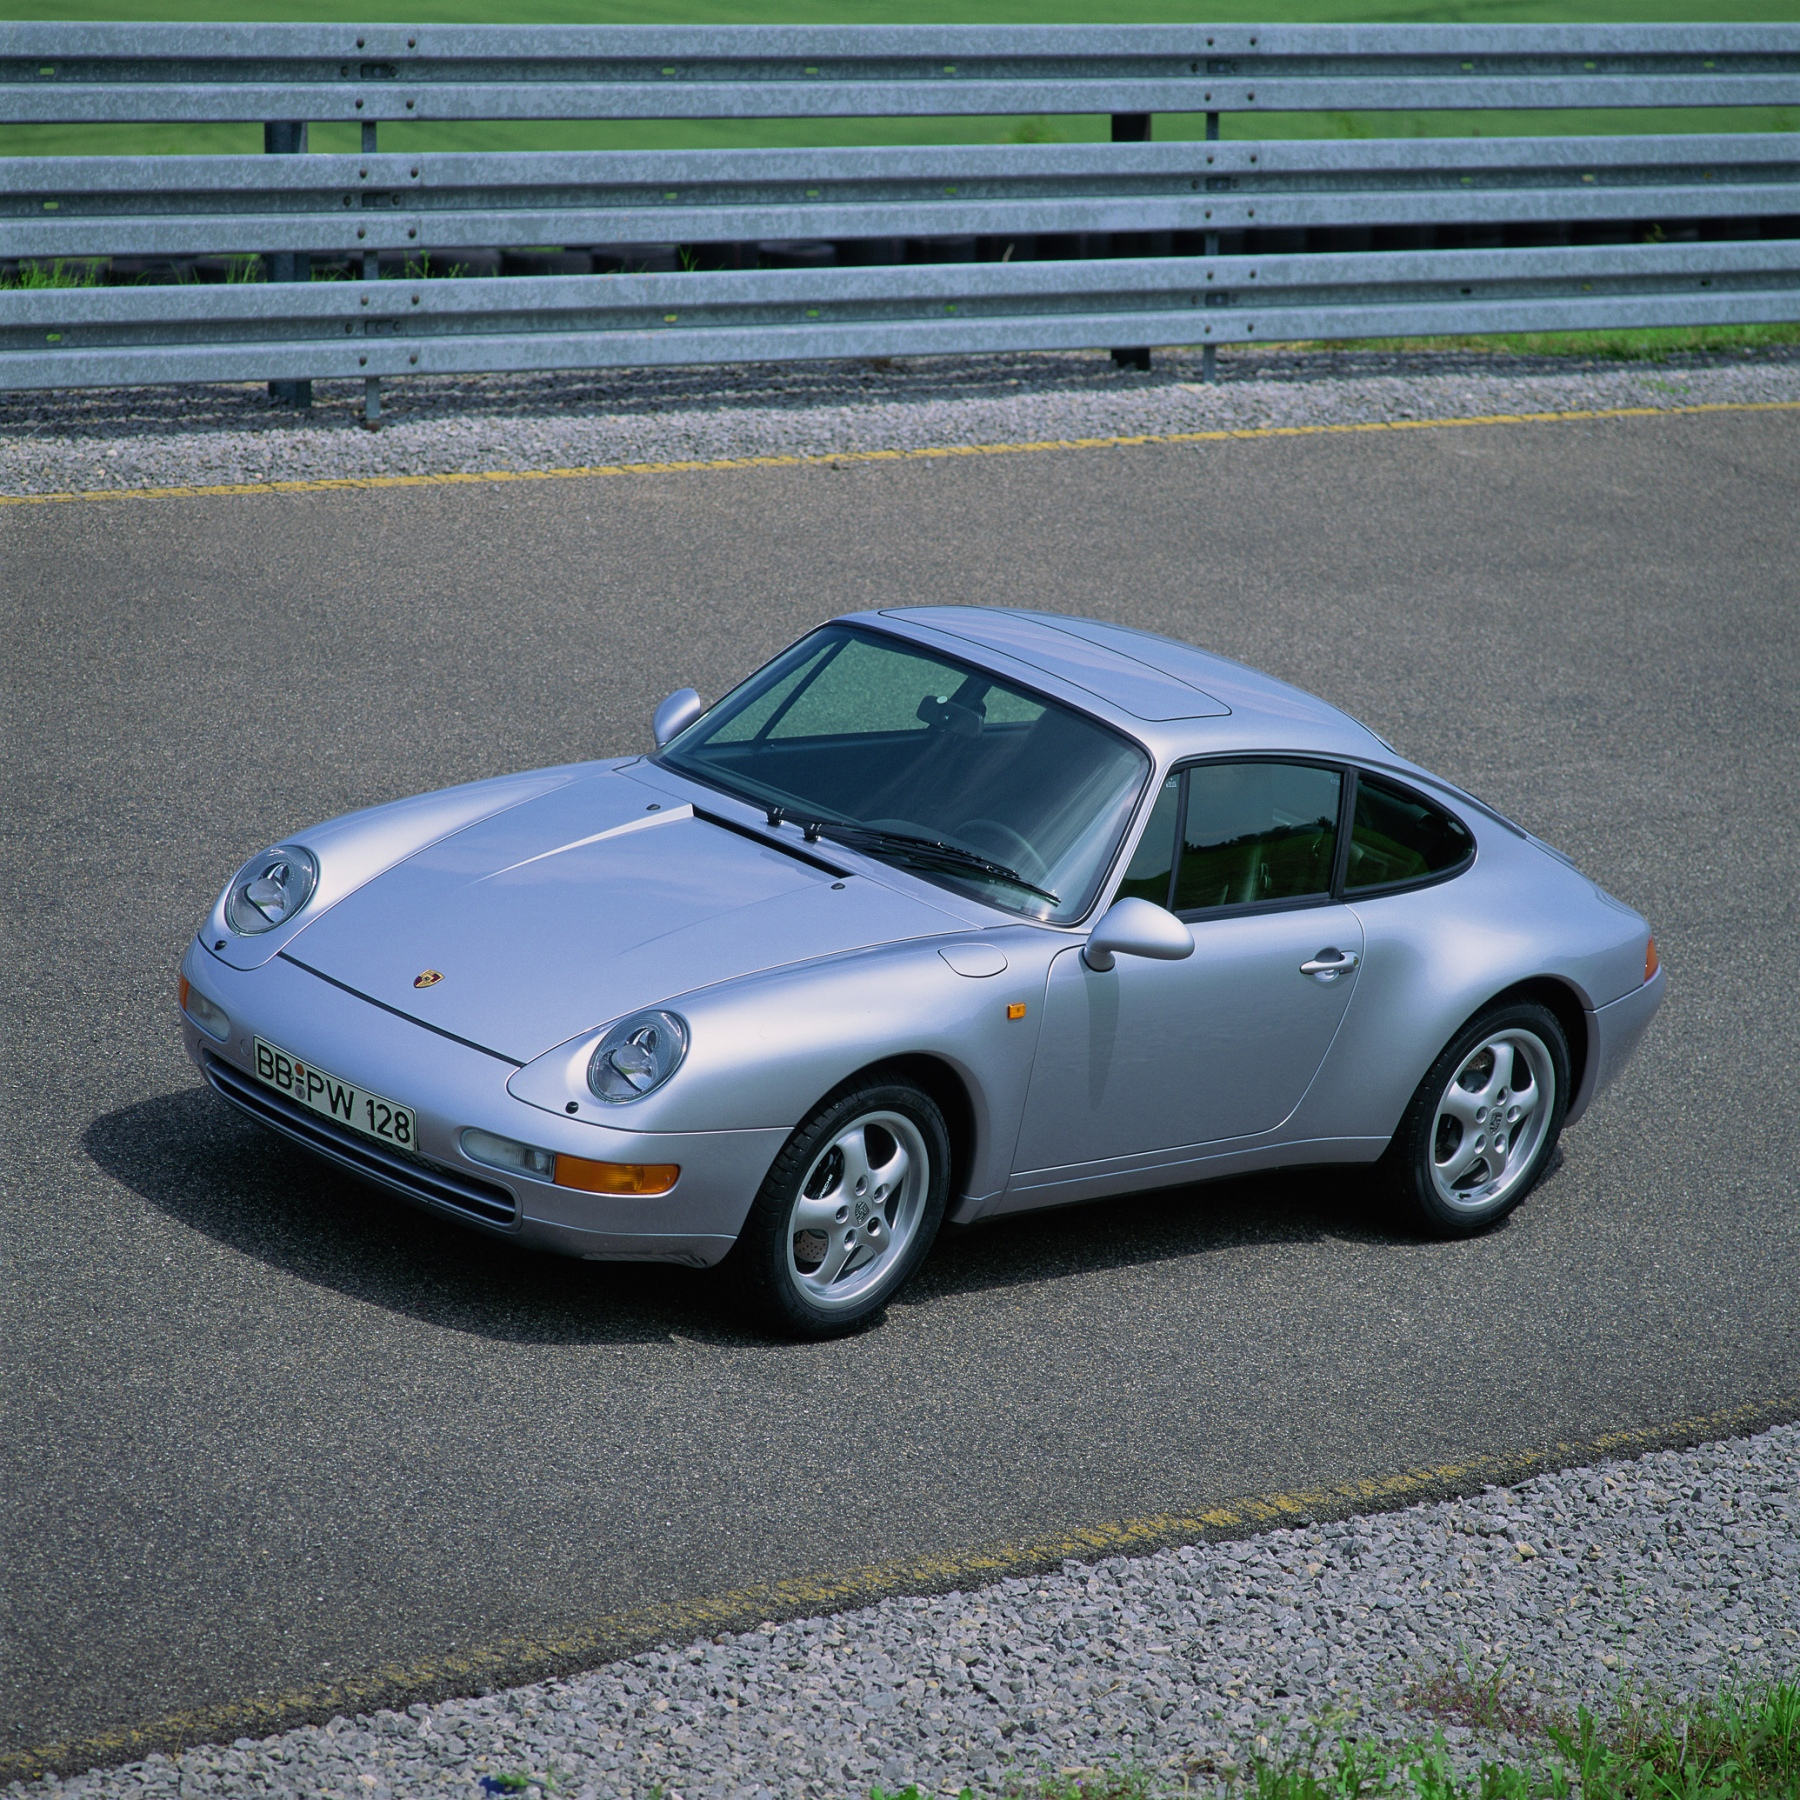 993 1993 1998 Production Anniversary Of The Porsche 911